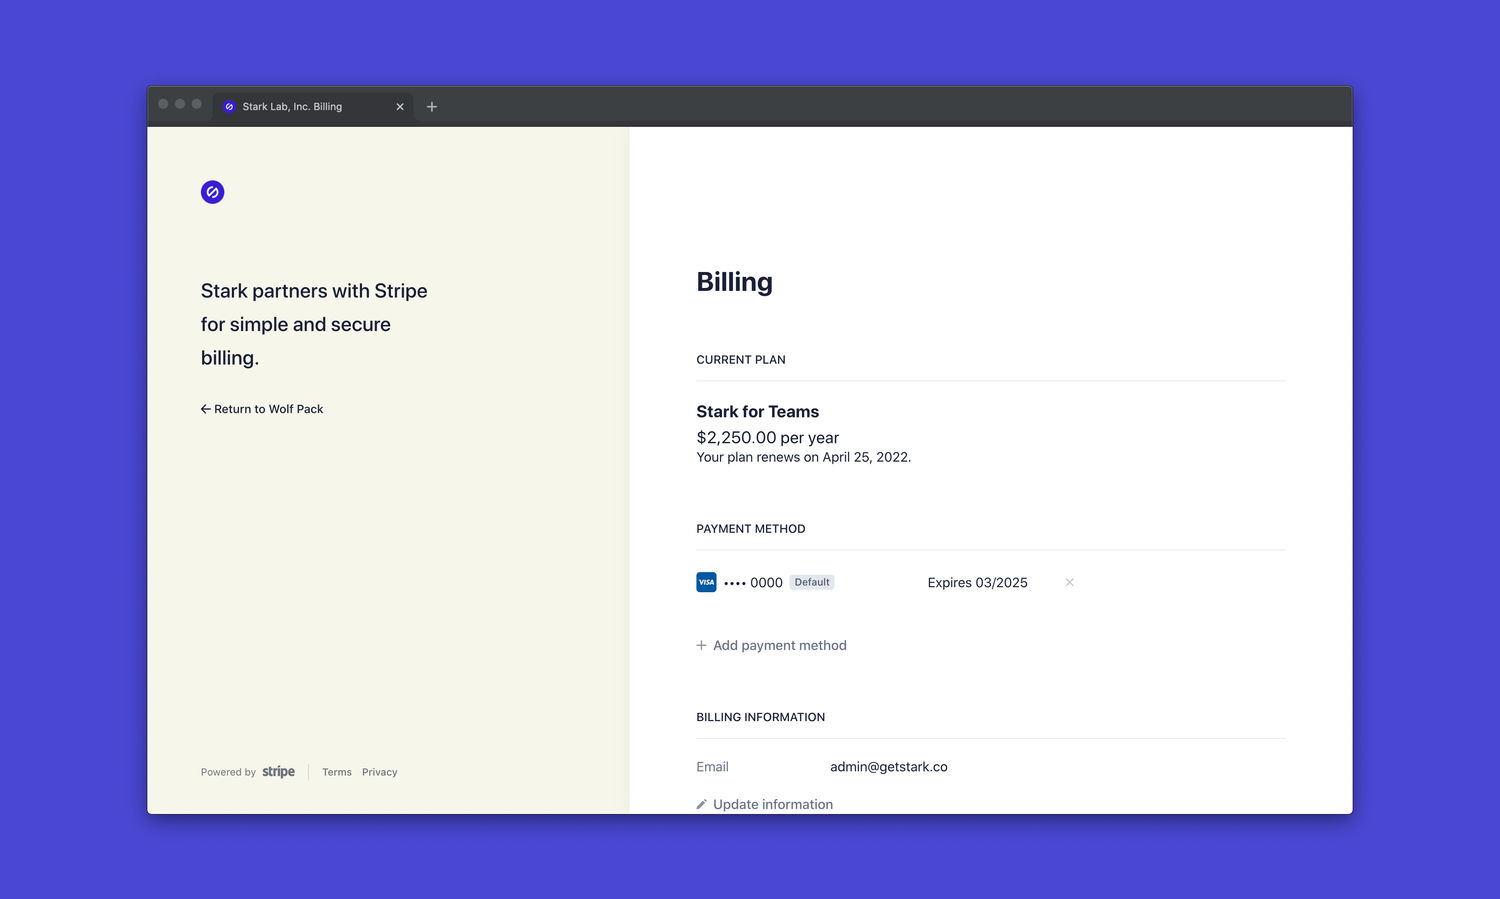 A user interface of Stripe's user portal. The portal shows a team's most recent invoice, highlighting their current plan and billing information.